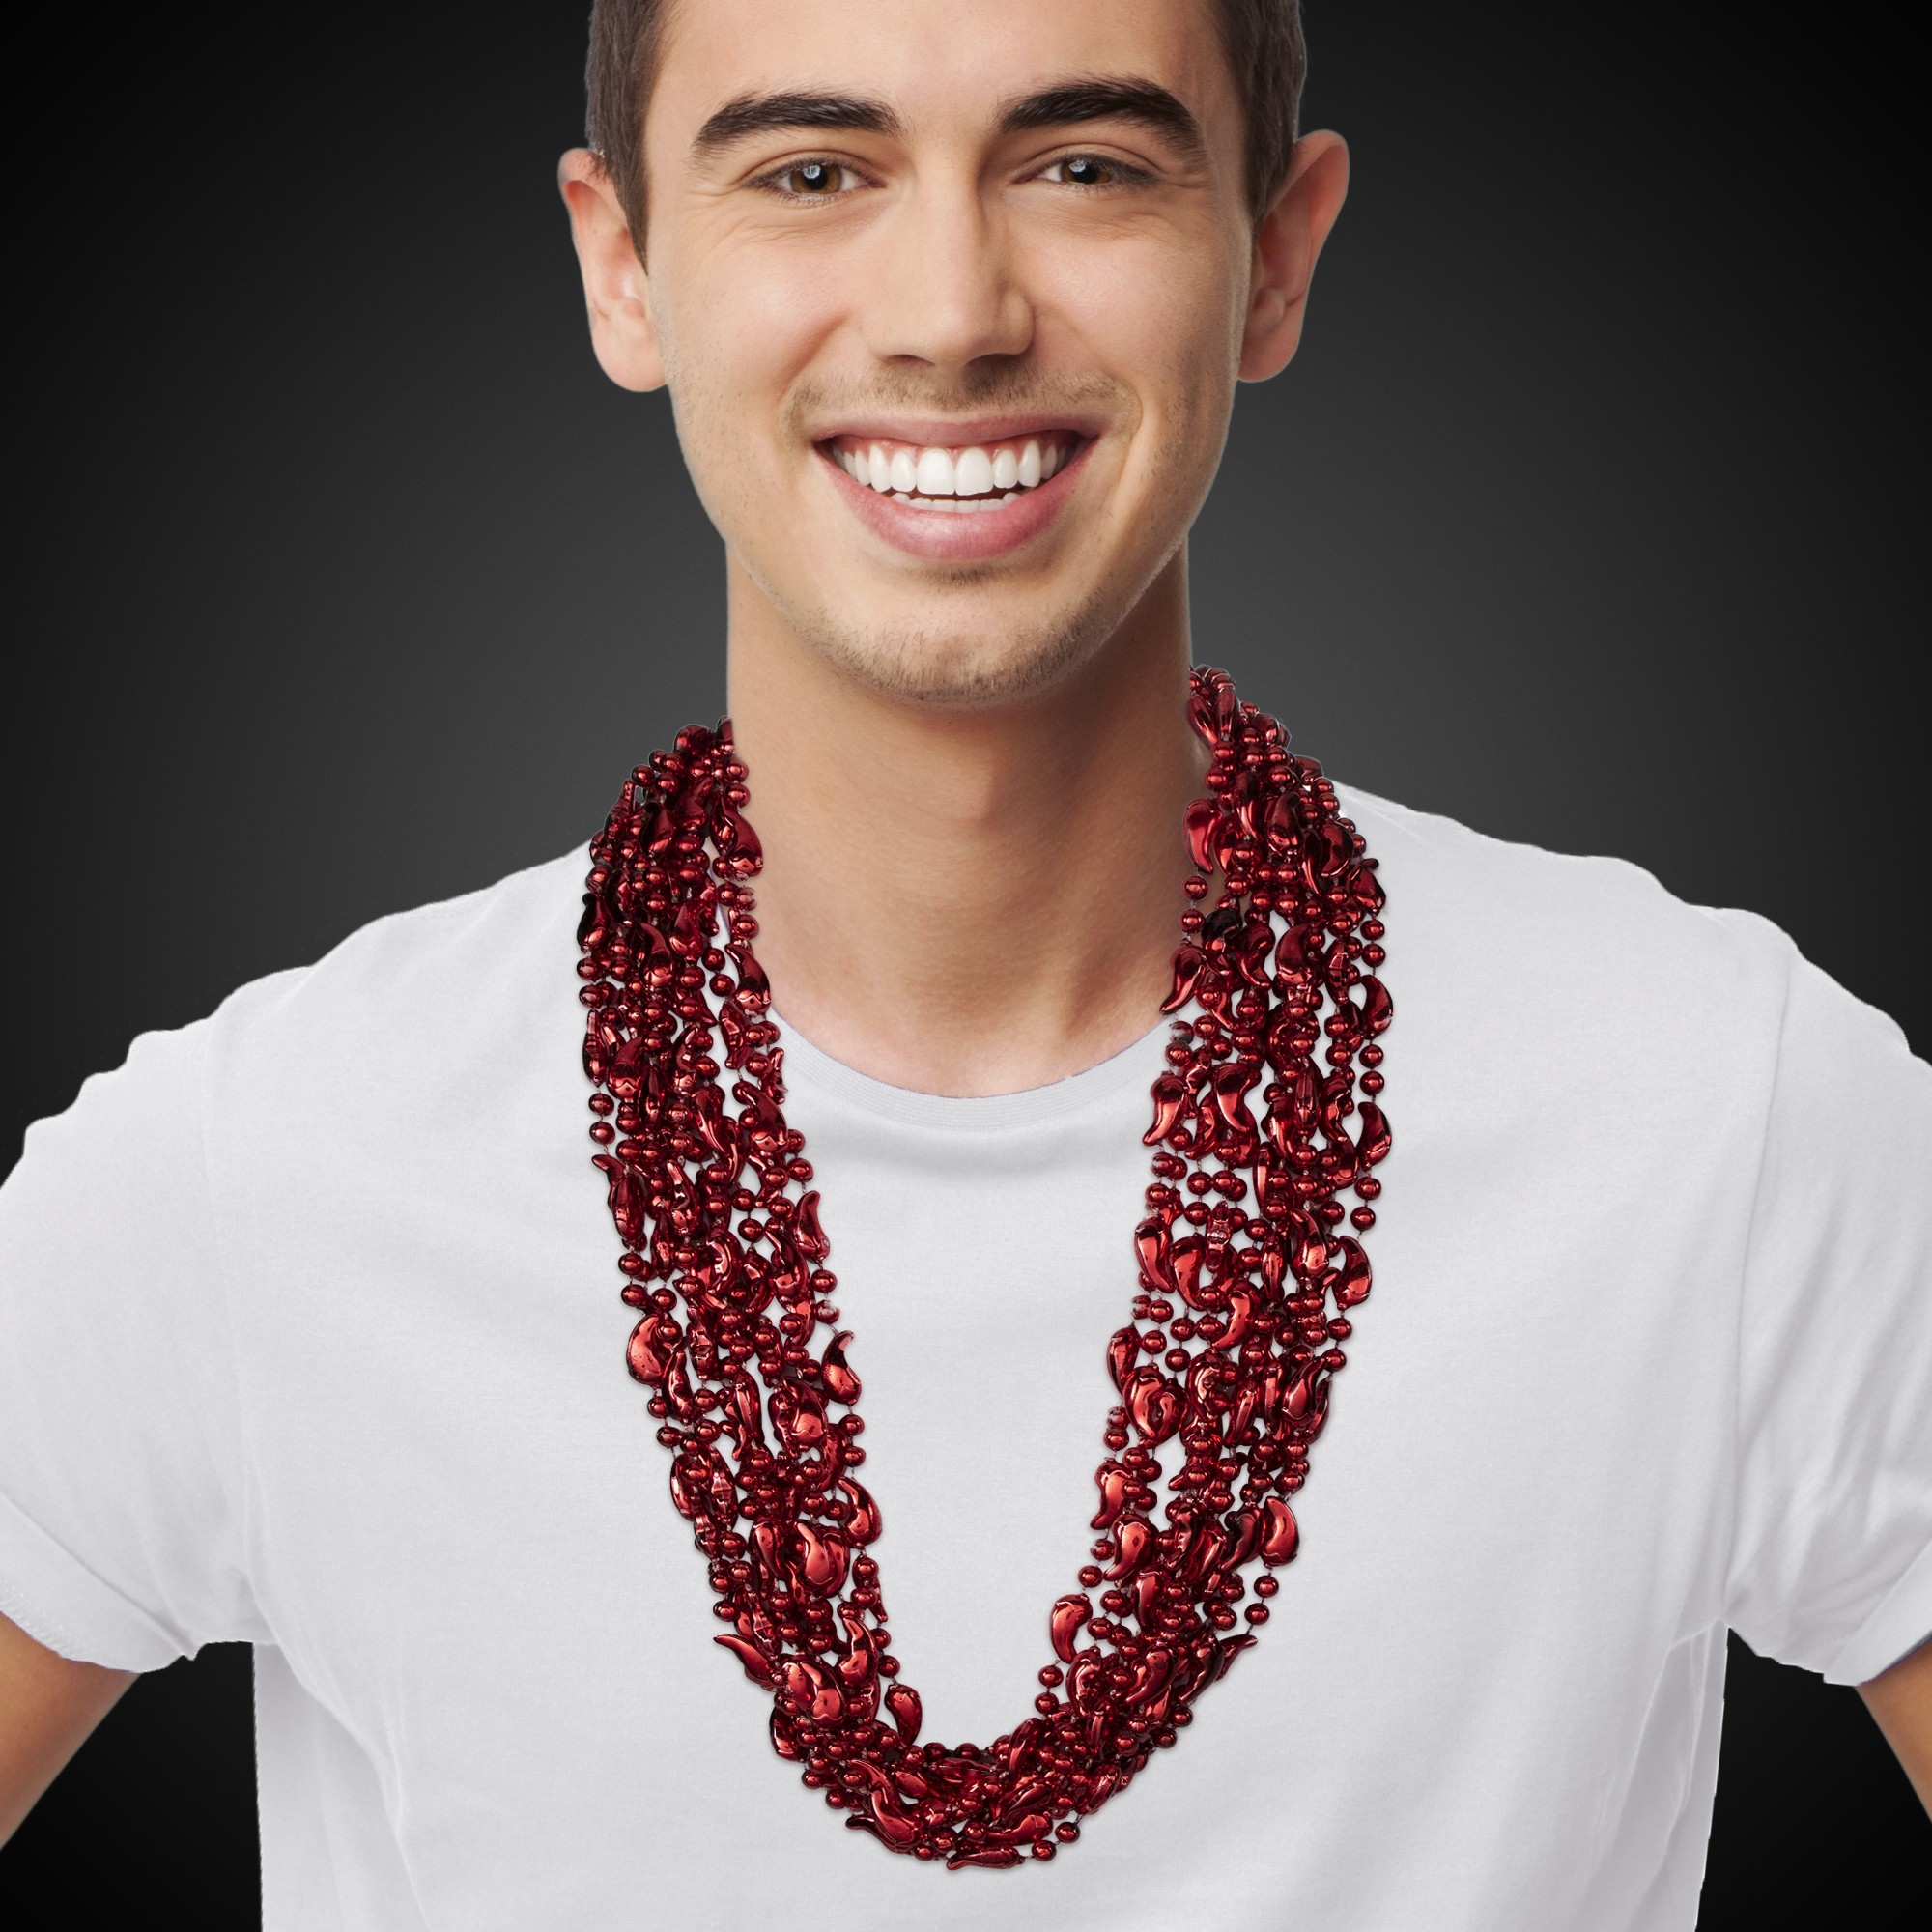 33 INCH RED CHILI PEPPER BEAD NECKLACES